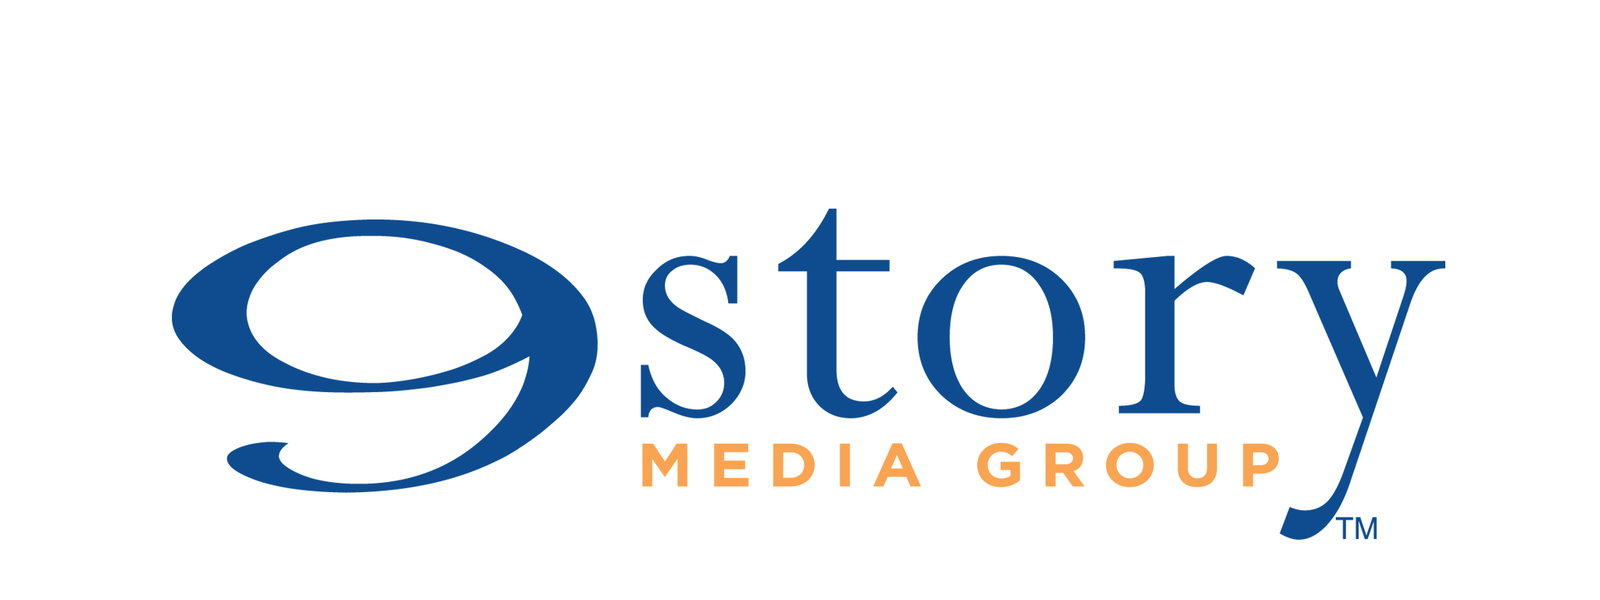 Brown Bag Films Joins the 9 Story Family! #PressRelease